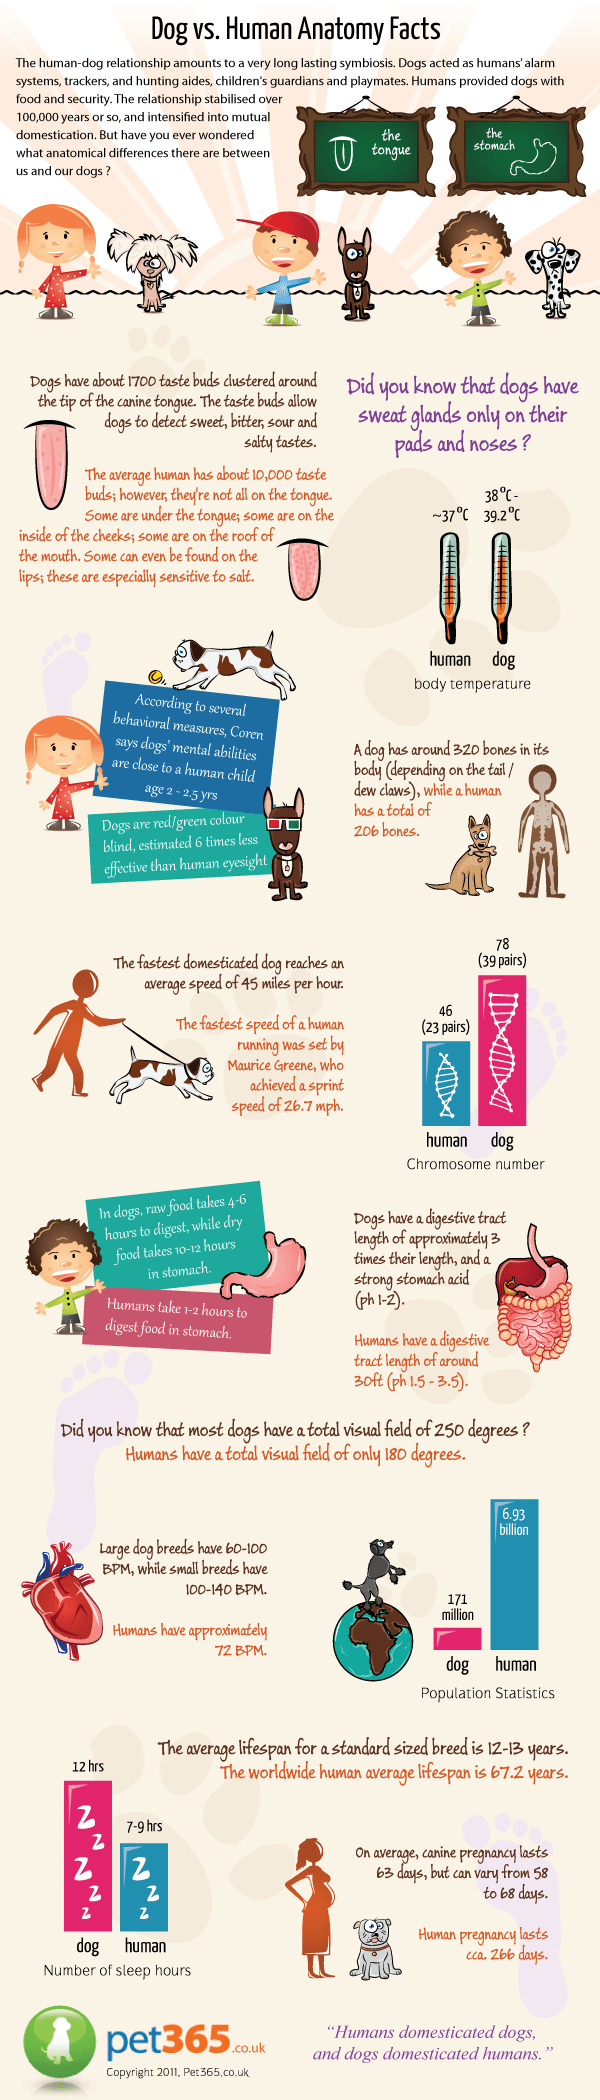 Dog vs. Human Anatomy Facts